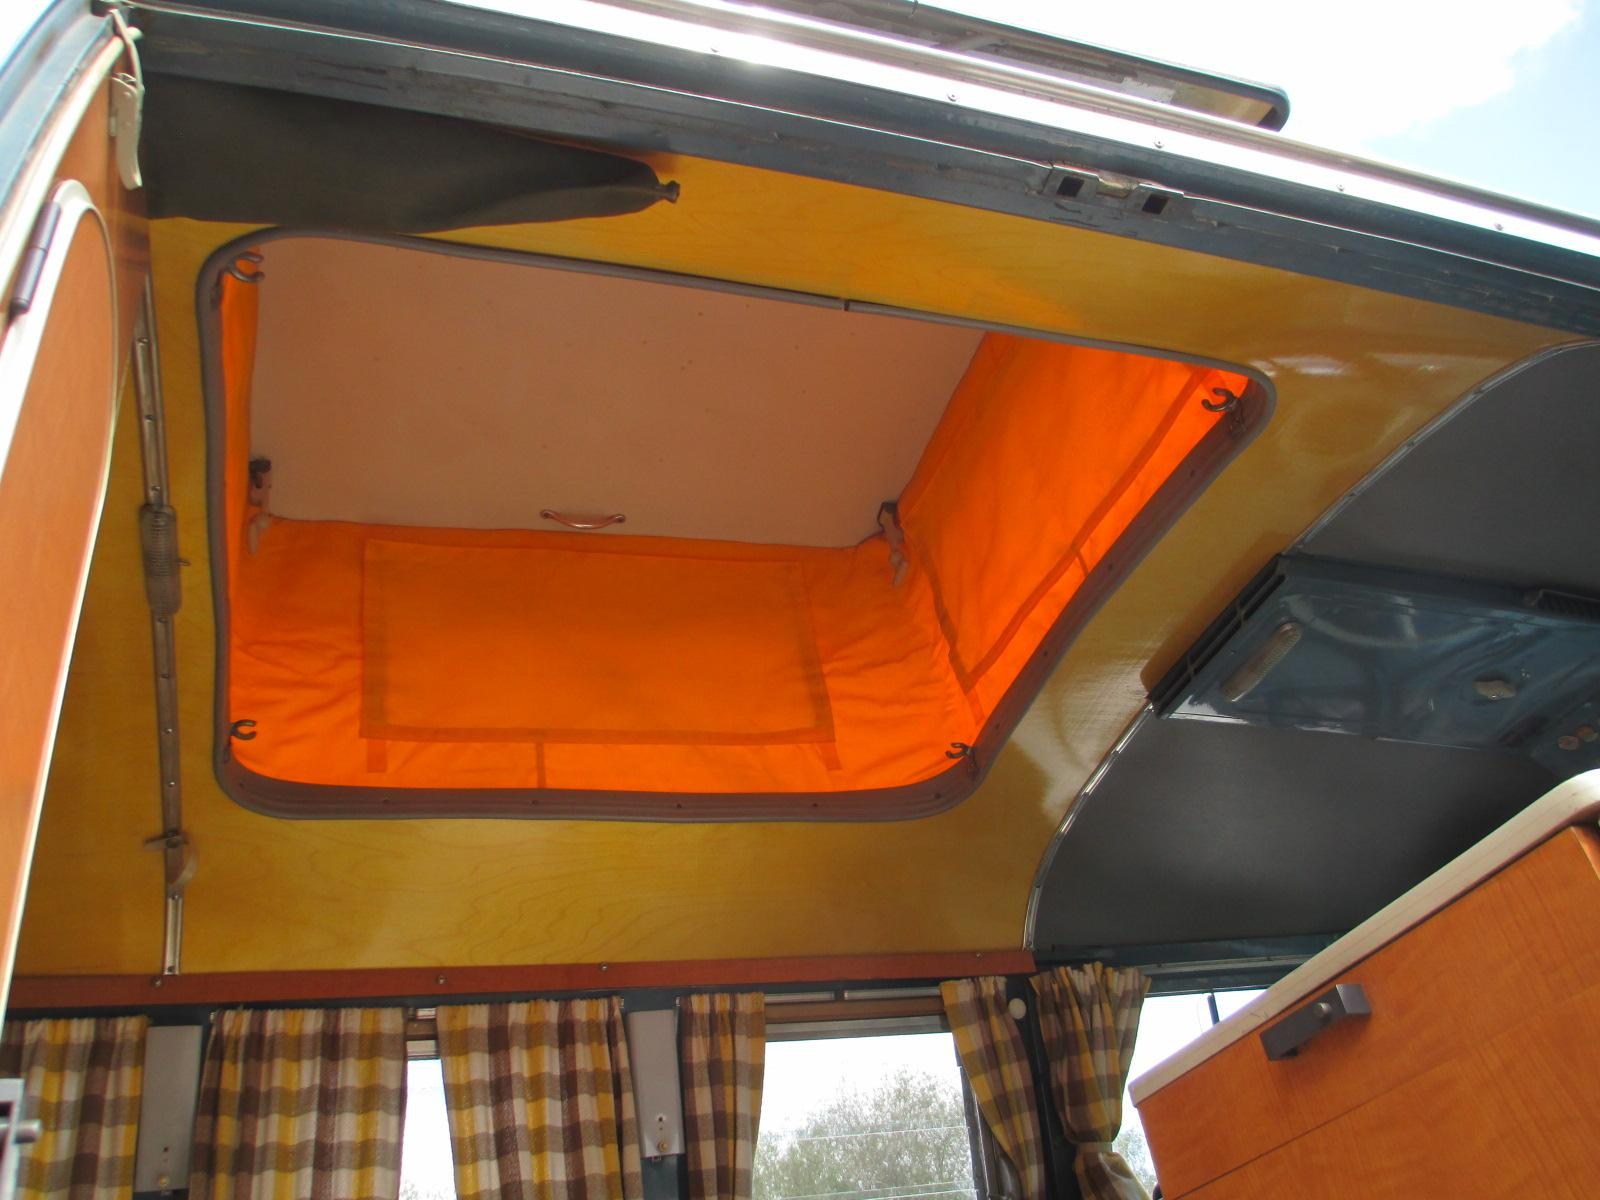 Sean's SO-42 pop-top Westfalia camper